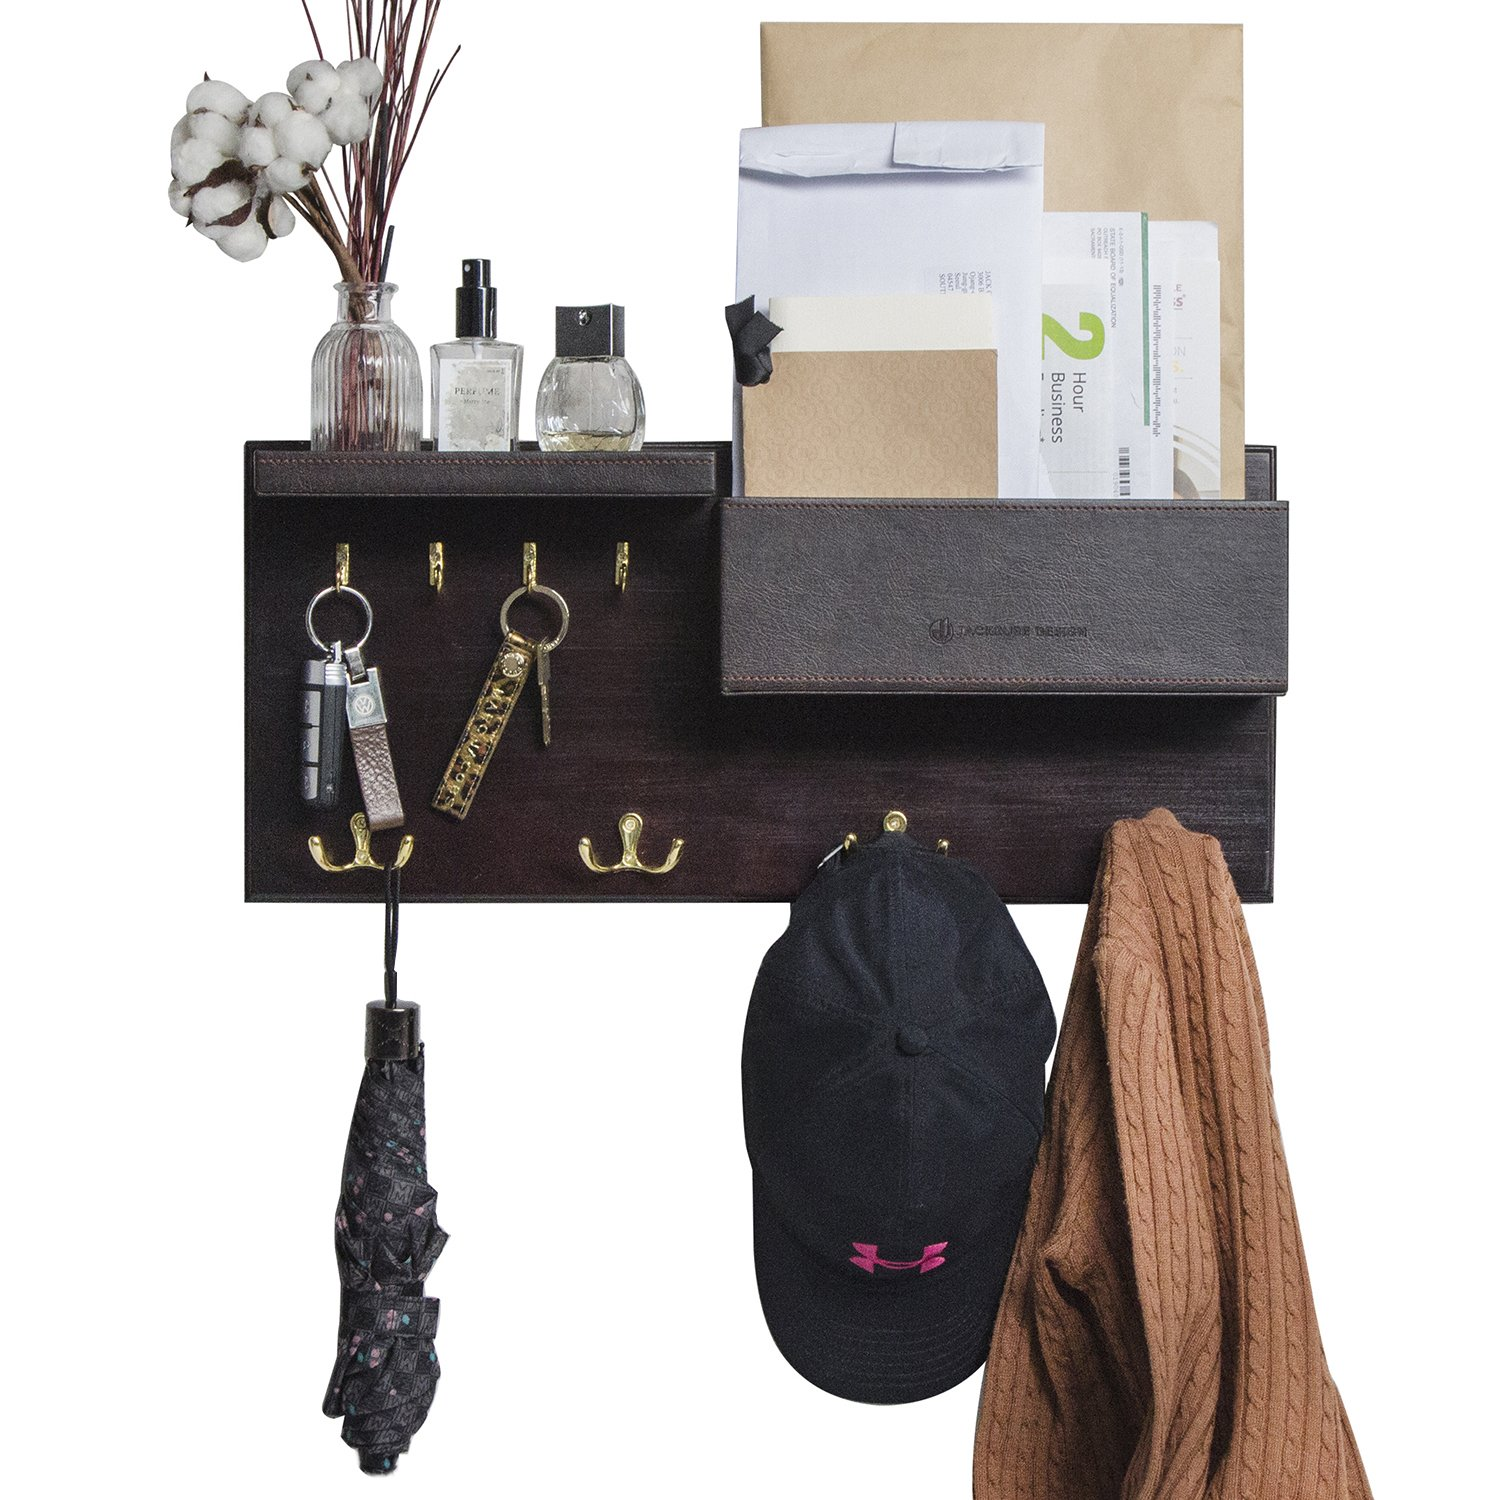 JackCubeDesign Entryway Coat Rack Wall Mount Key Holder Mail Envelope Hook Organizer Clothes Hat Hanger with Leather Shelf and Tray(Solid Wood, 20.5 x 9.1 x 3.4 inches) – :MK362B